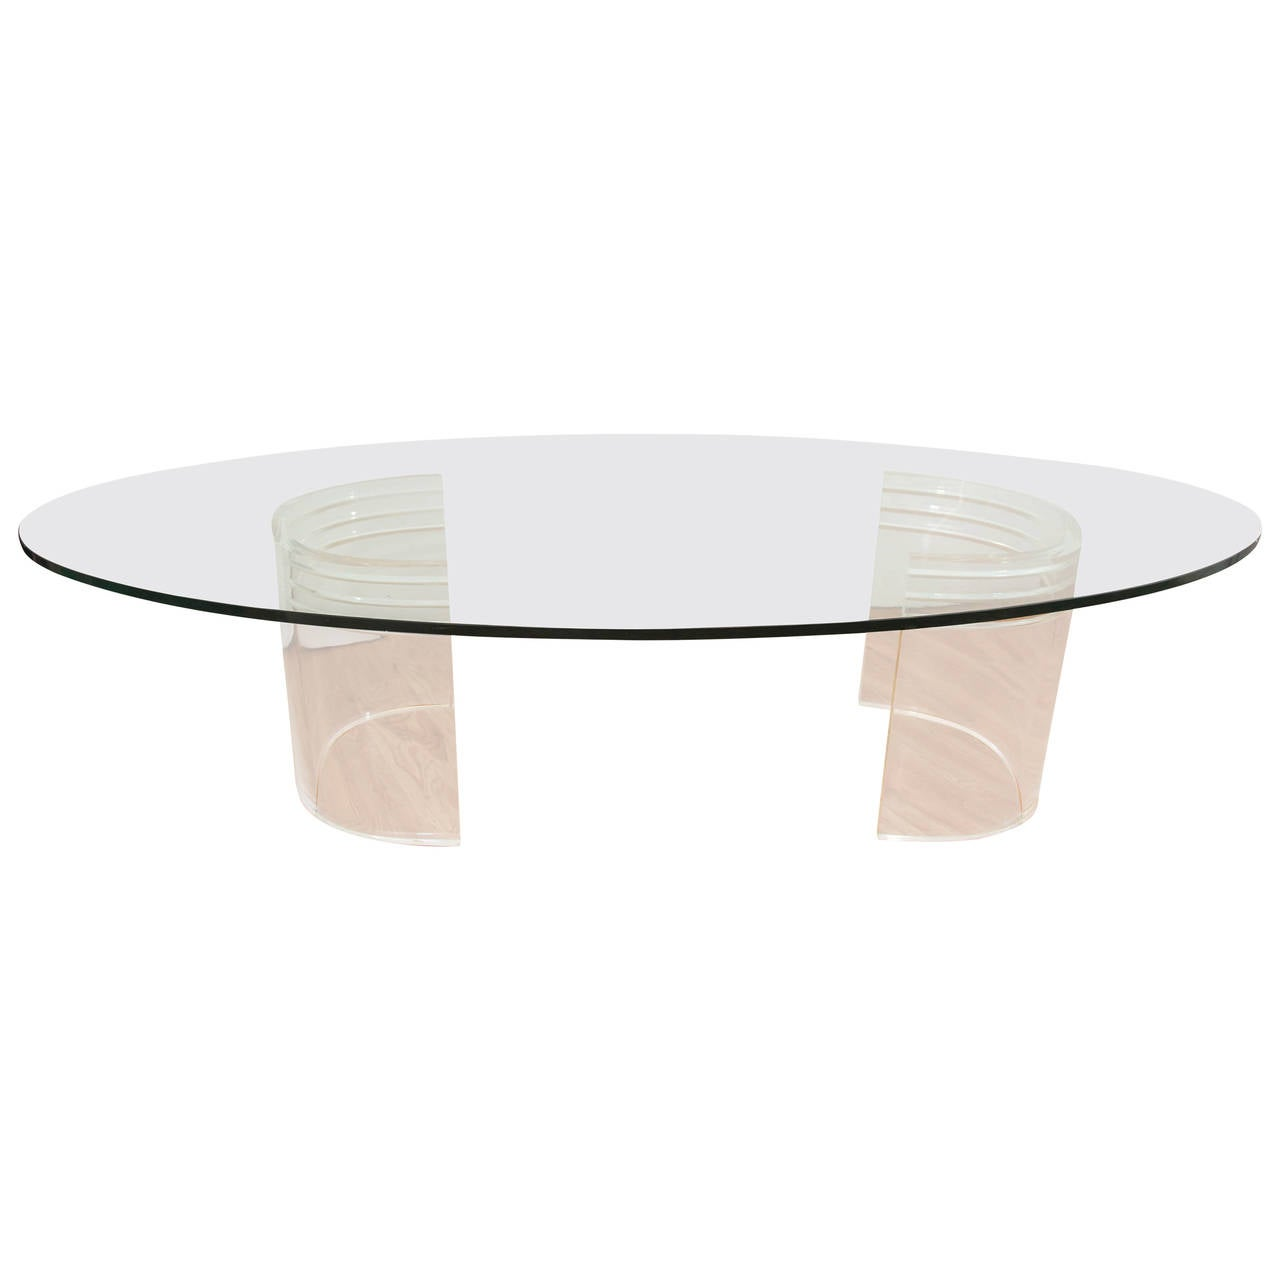 Midcentury coffee table with glass oval top on two 39 c 39 form lucite bases for sale at 1stdibs Glass oval coffee tables